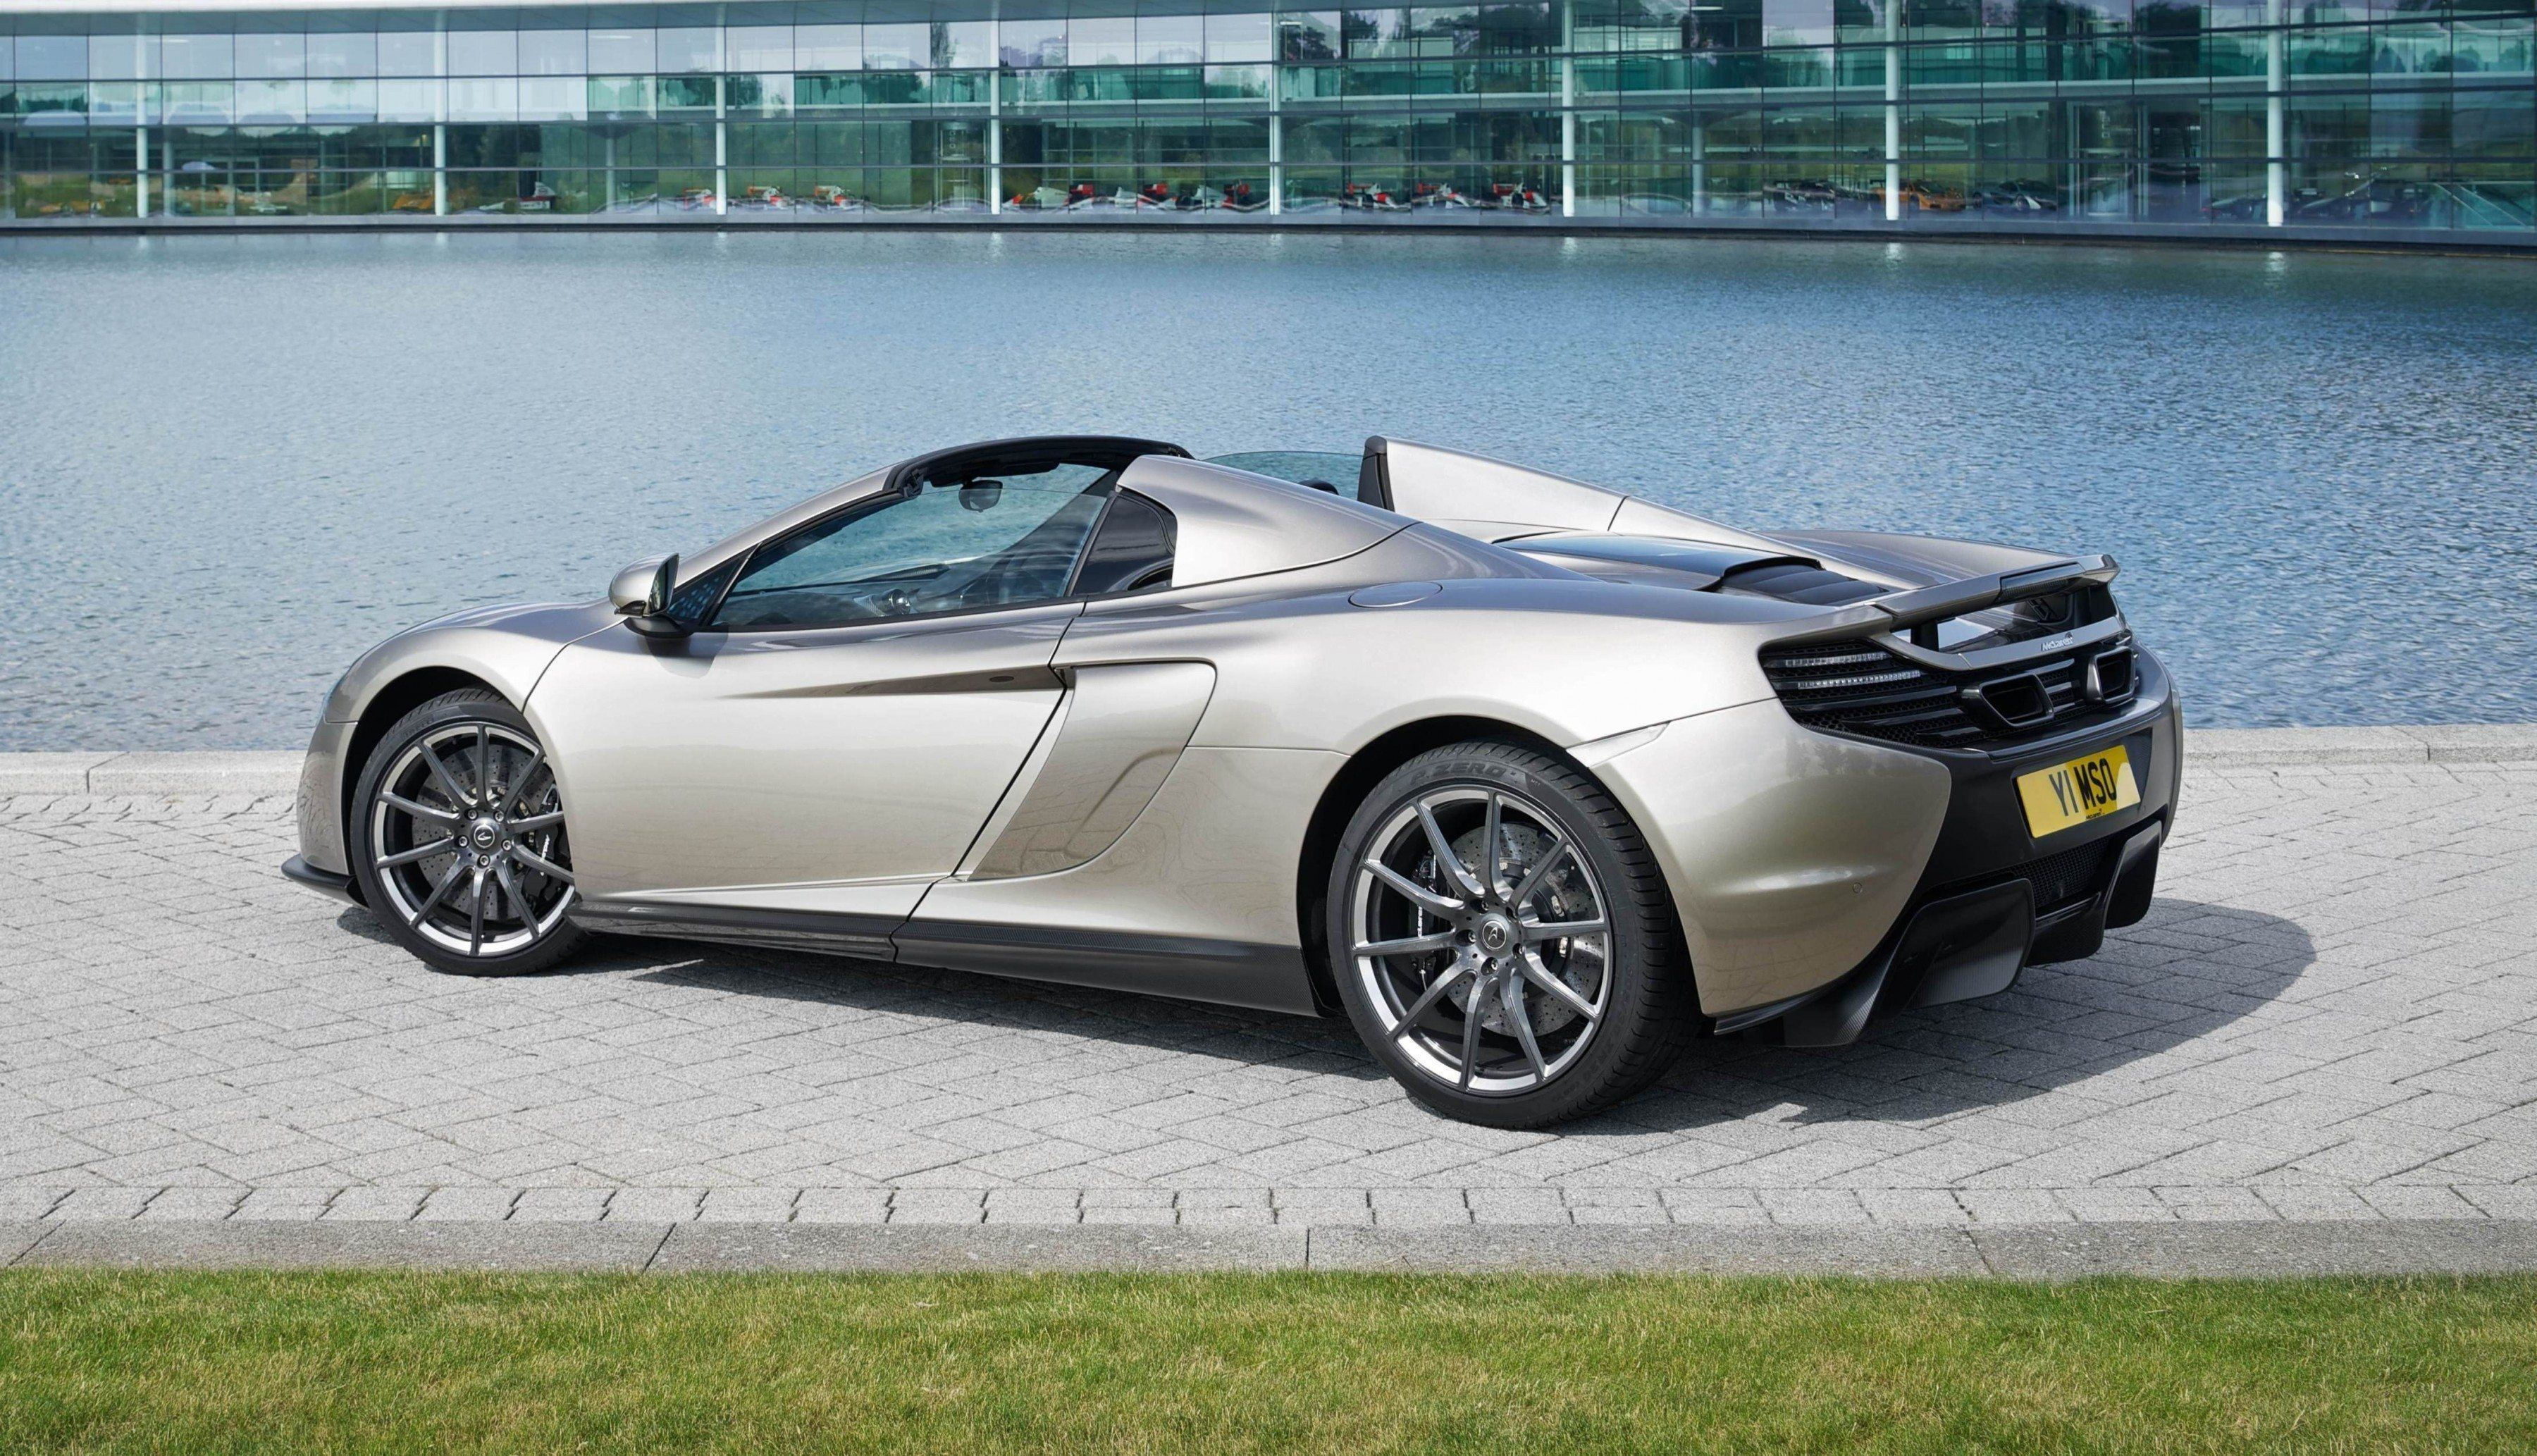 mclaren special operations 650s spider answers painted. Black Bedroom Furniture Sets. Home Design Ideas